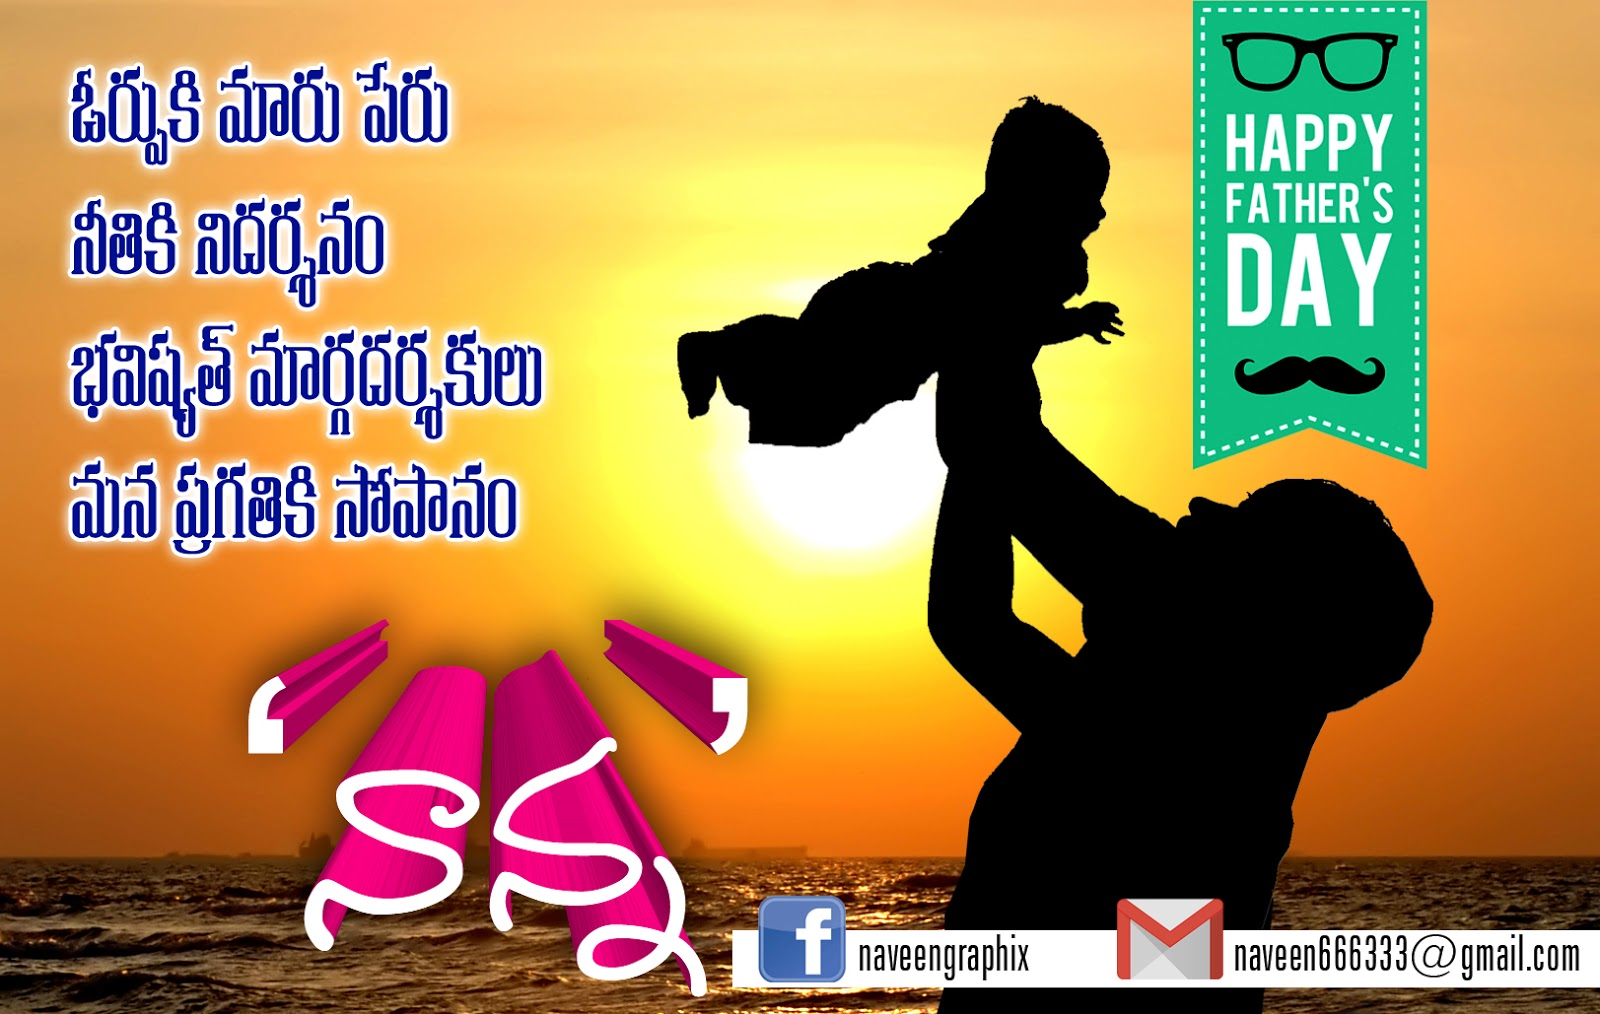 Famous fathers day quotes and greetings hd images srihitha ads happy fathers day telugu quotes and sayings hd m4hsunfo